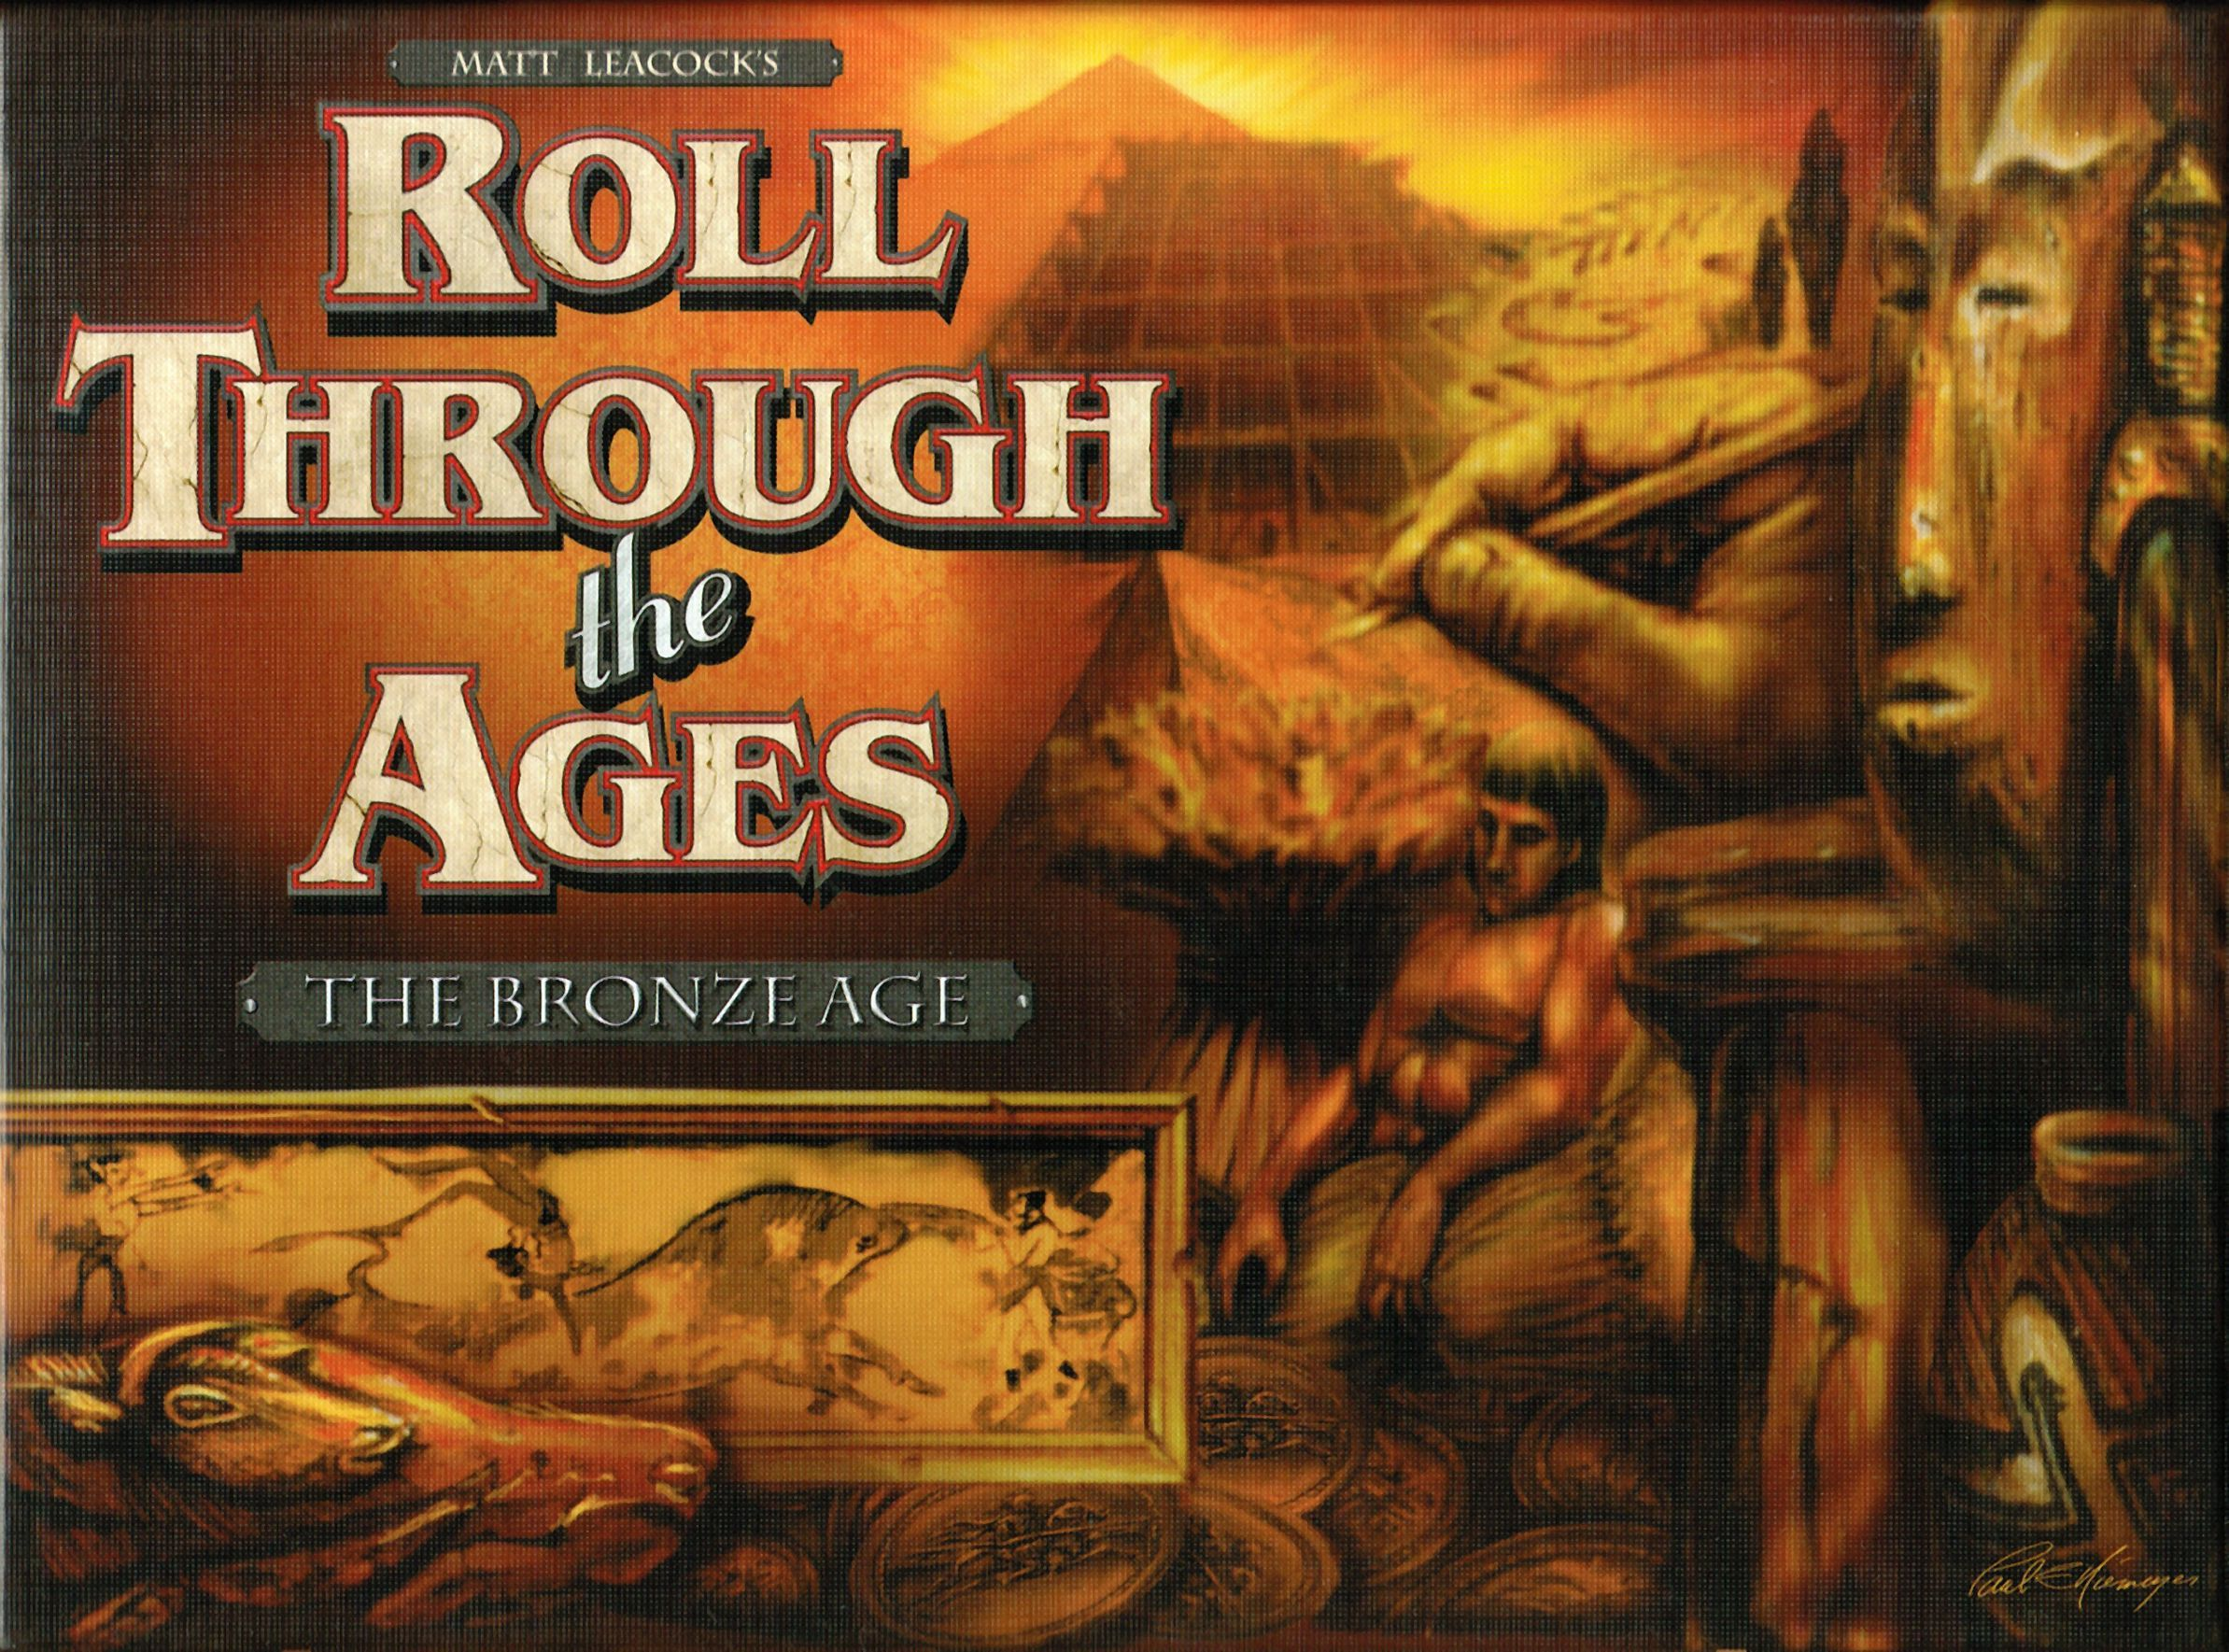 Roll Through the Ages: The Bronze Age